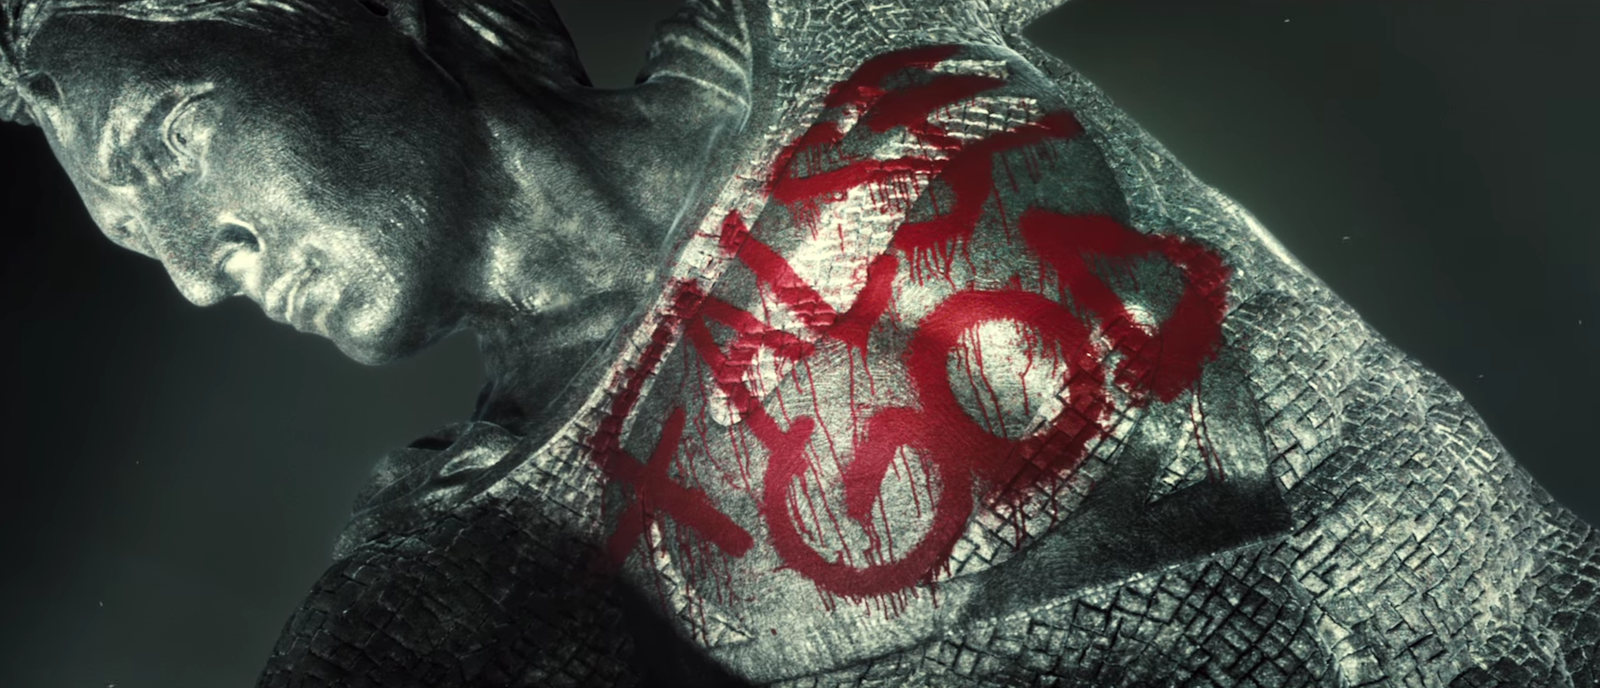 Batman v Superman: la statua di Superman ritenuto un falso Dio